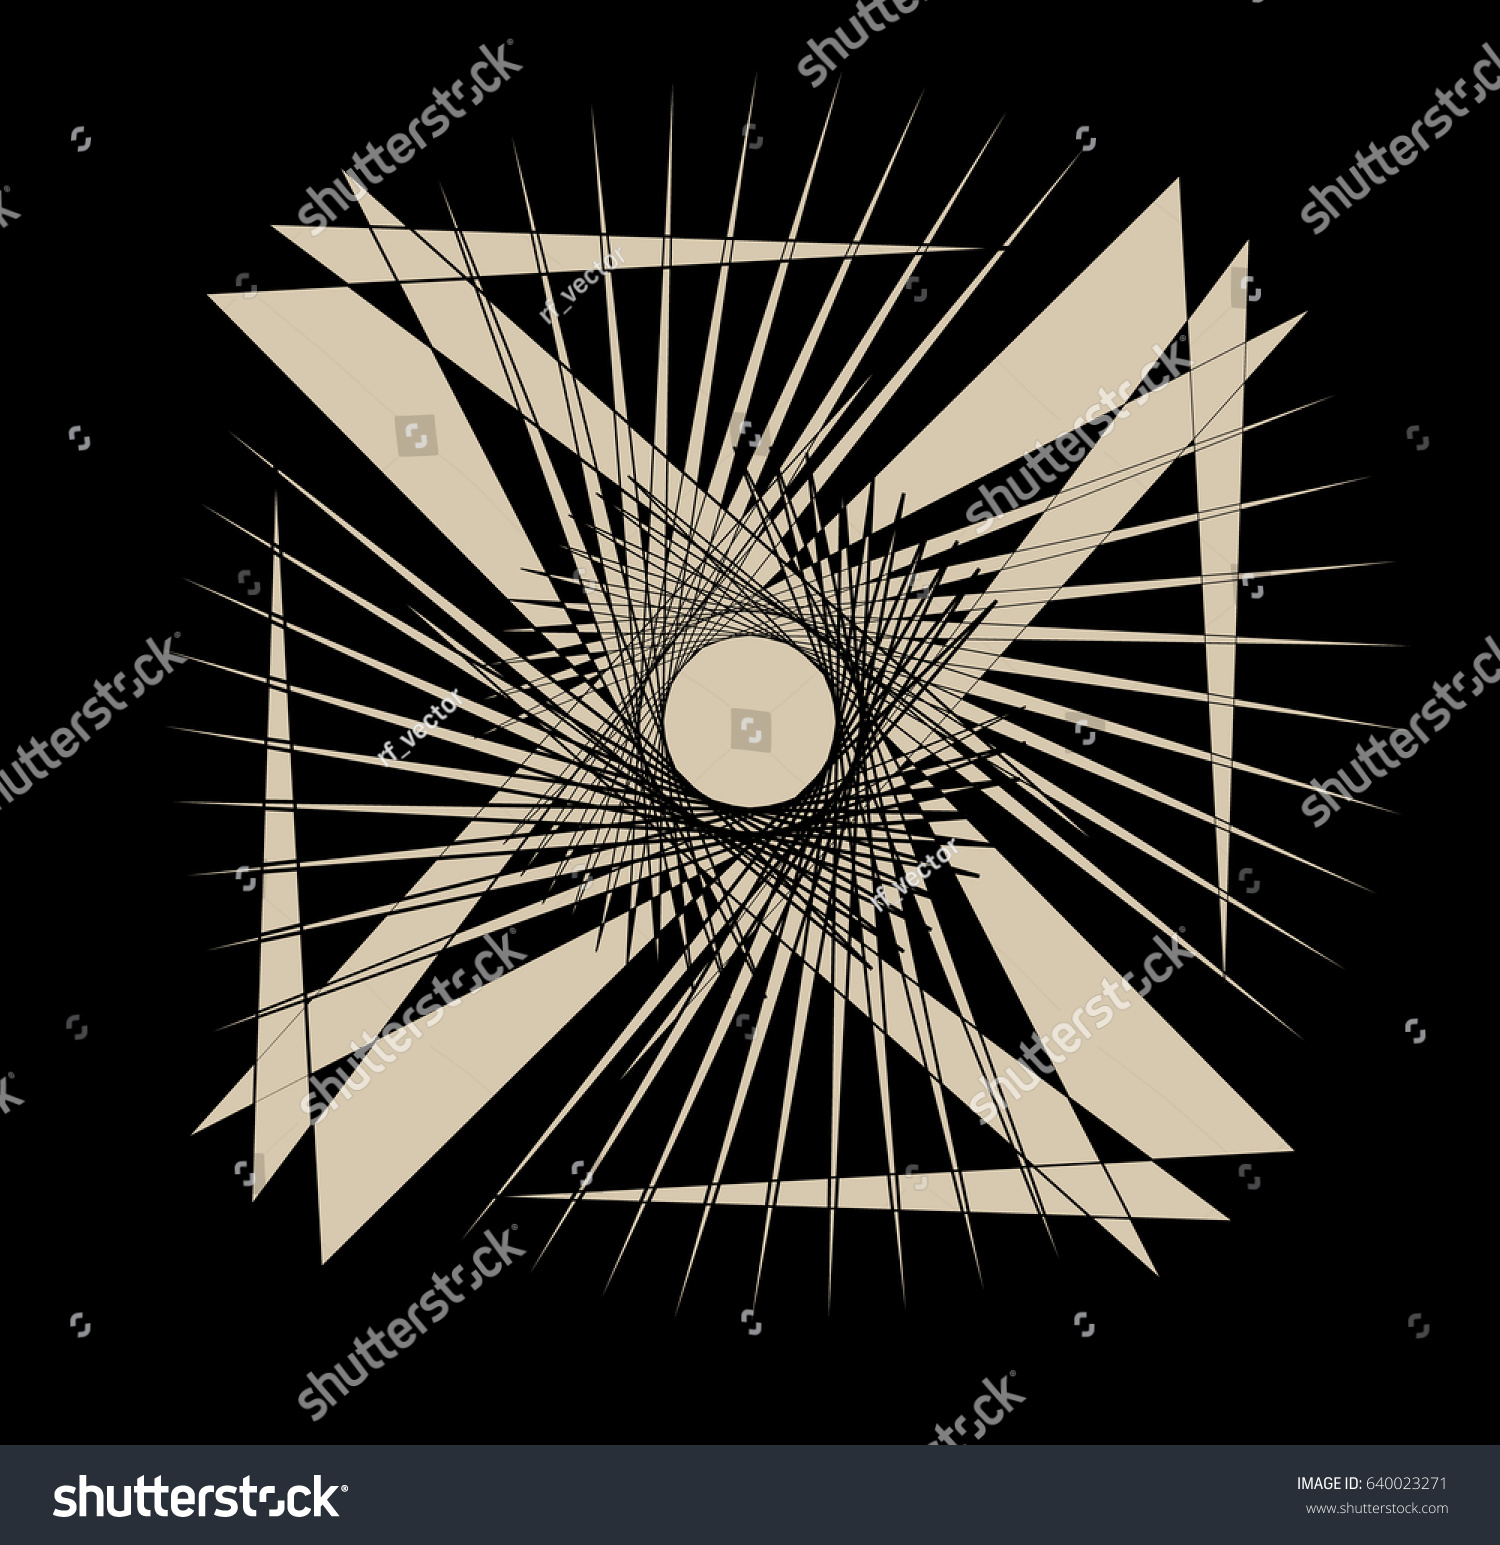 Geometric Edgy Random Shape Abstract Textured Stock Photo (Photo ...